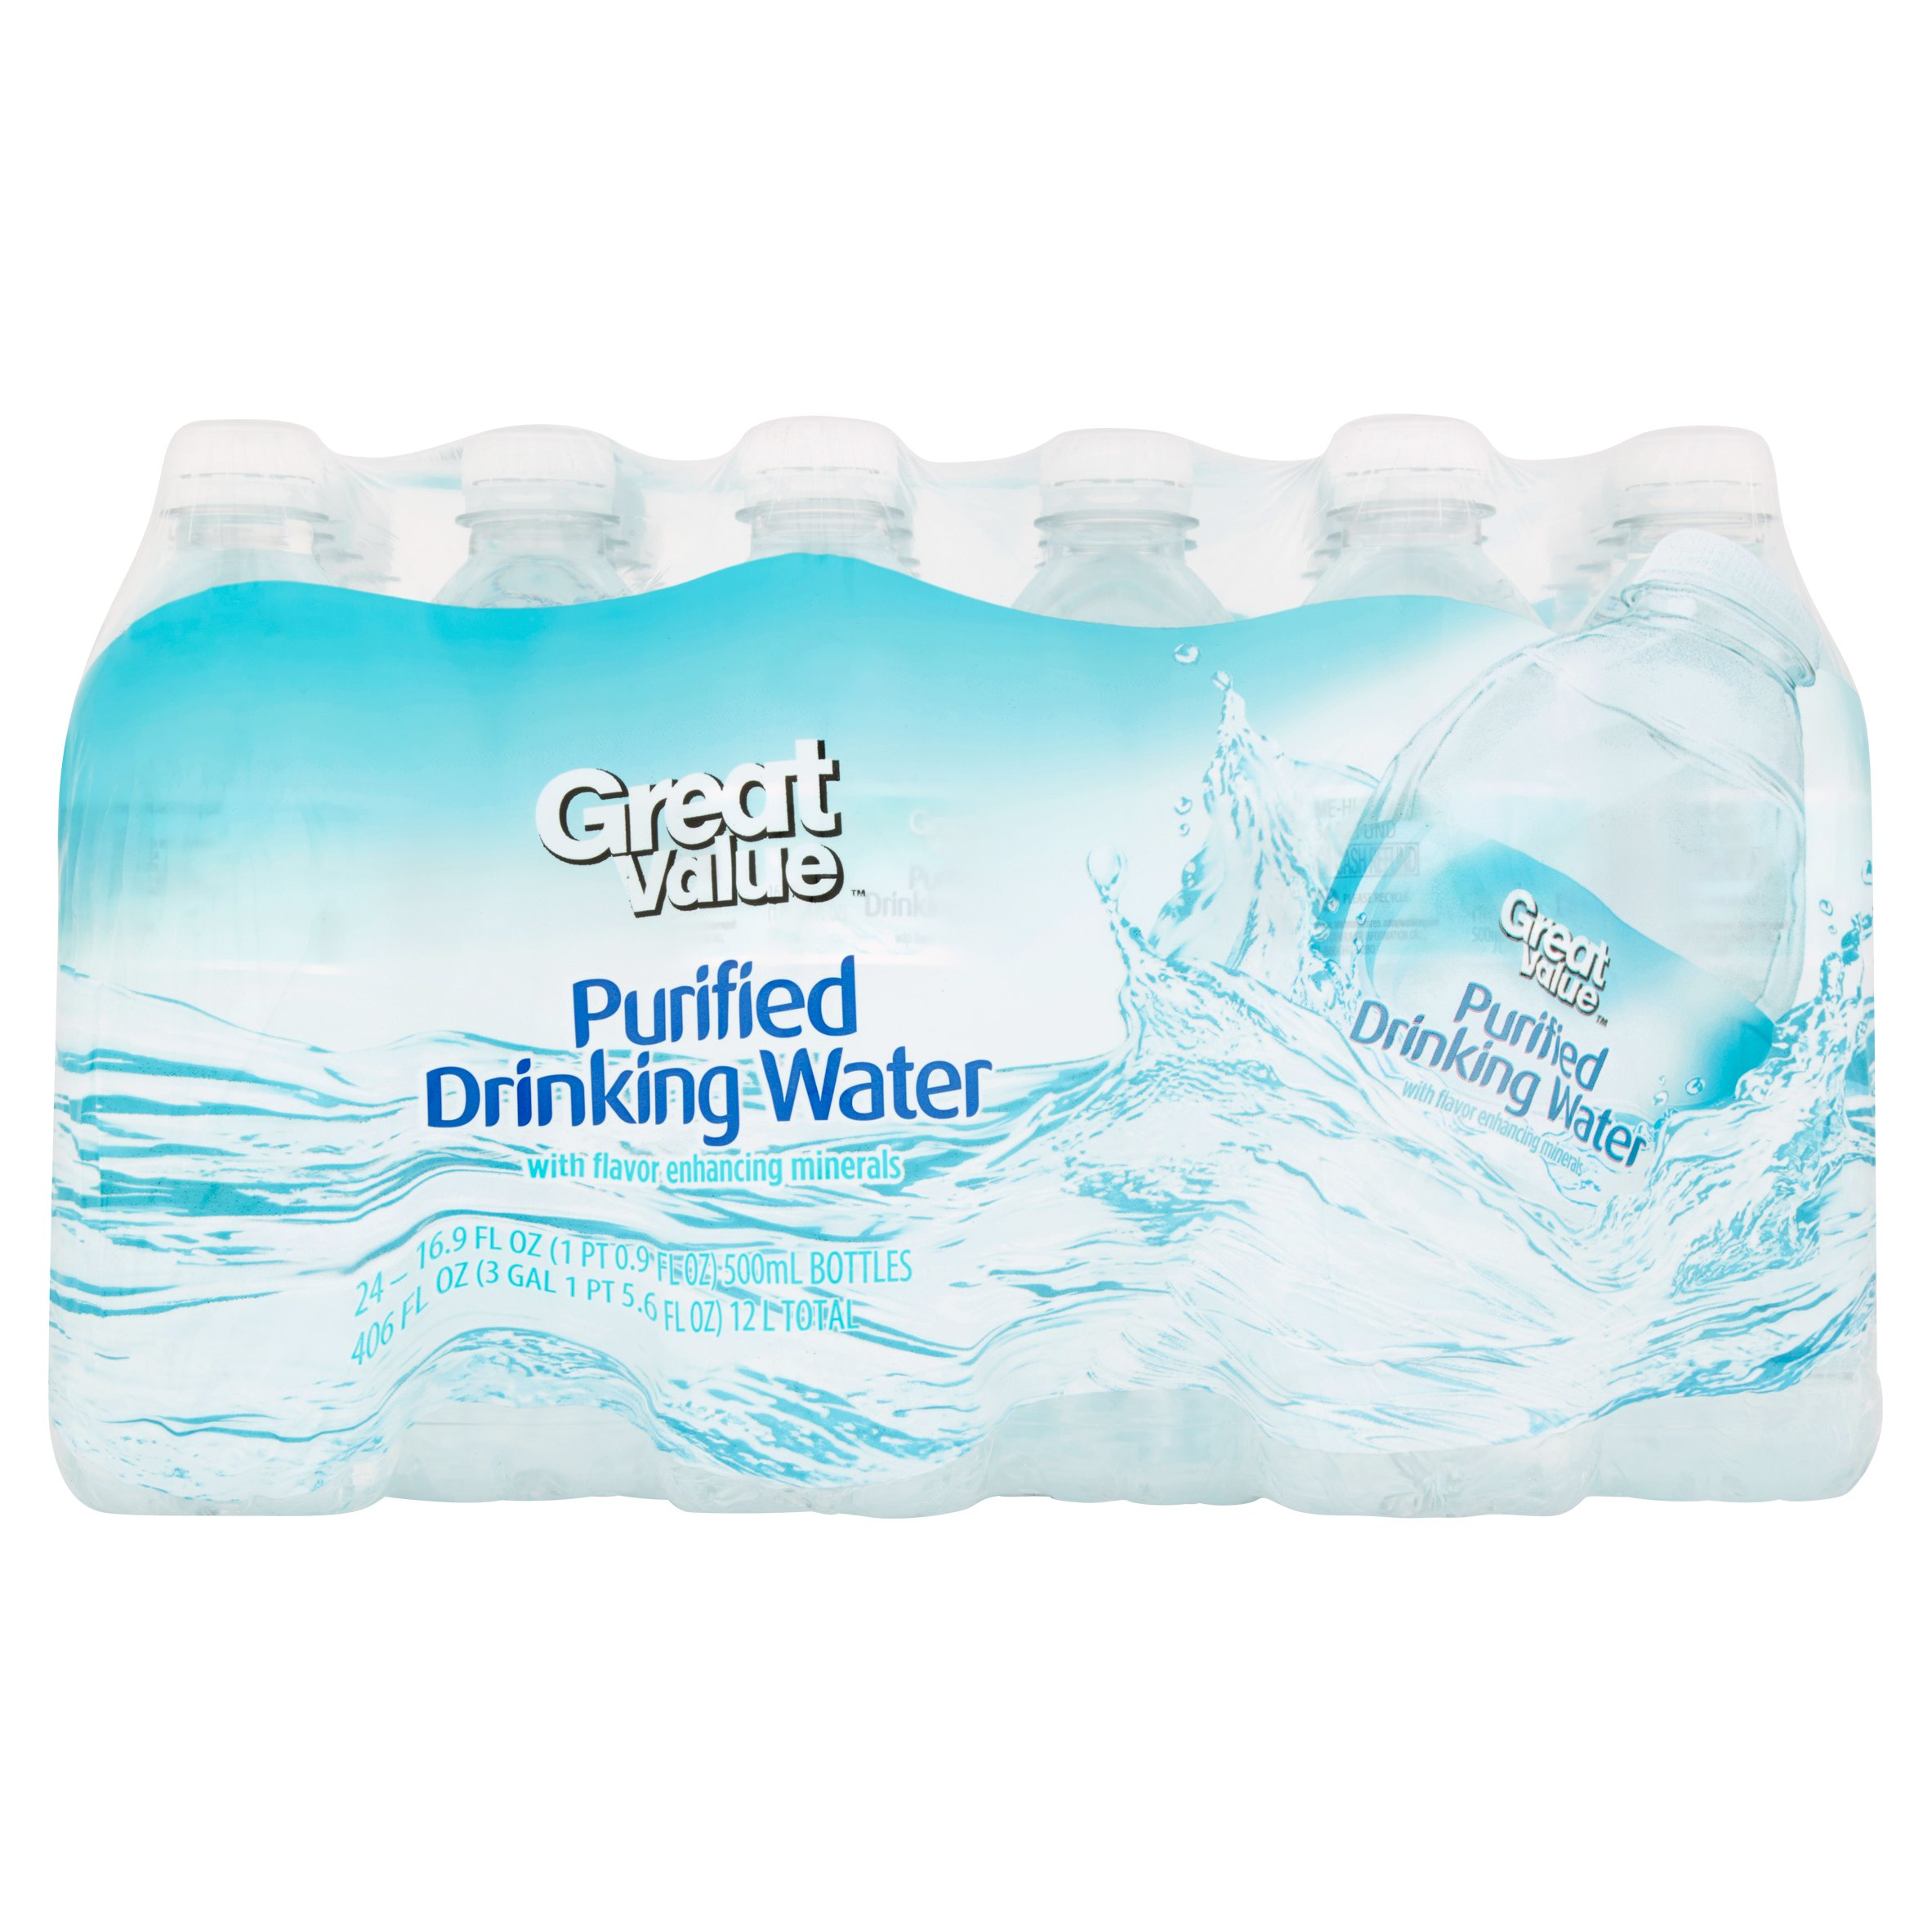 Great Value Purified Drinking Water, 16.9 fl oz, 24 Count